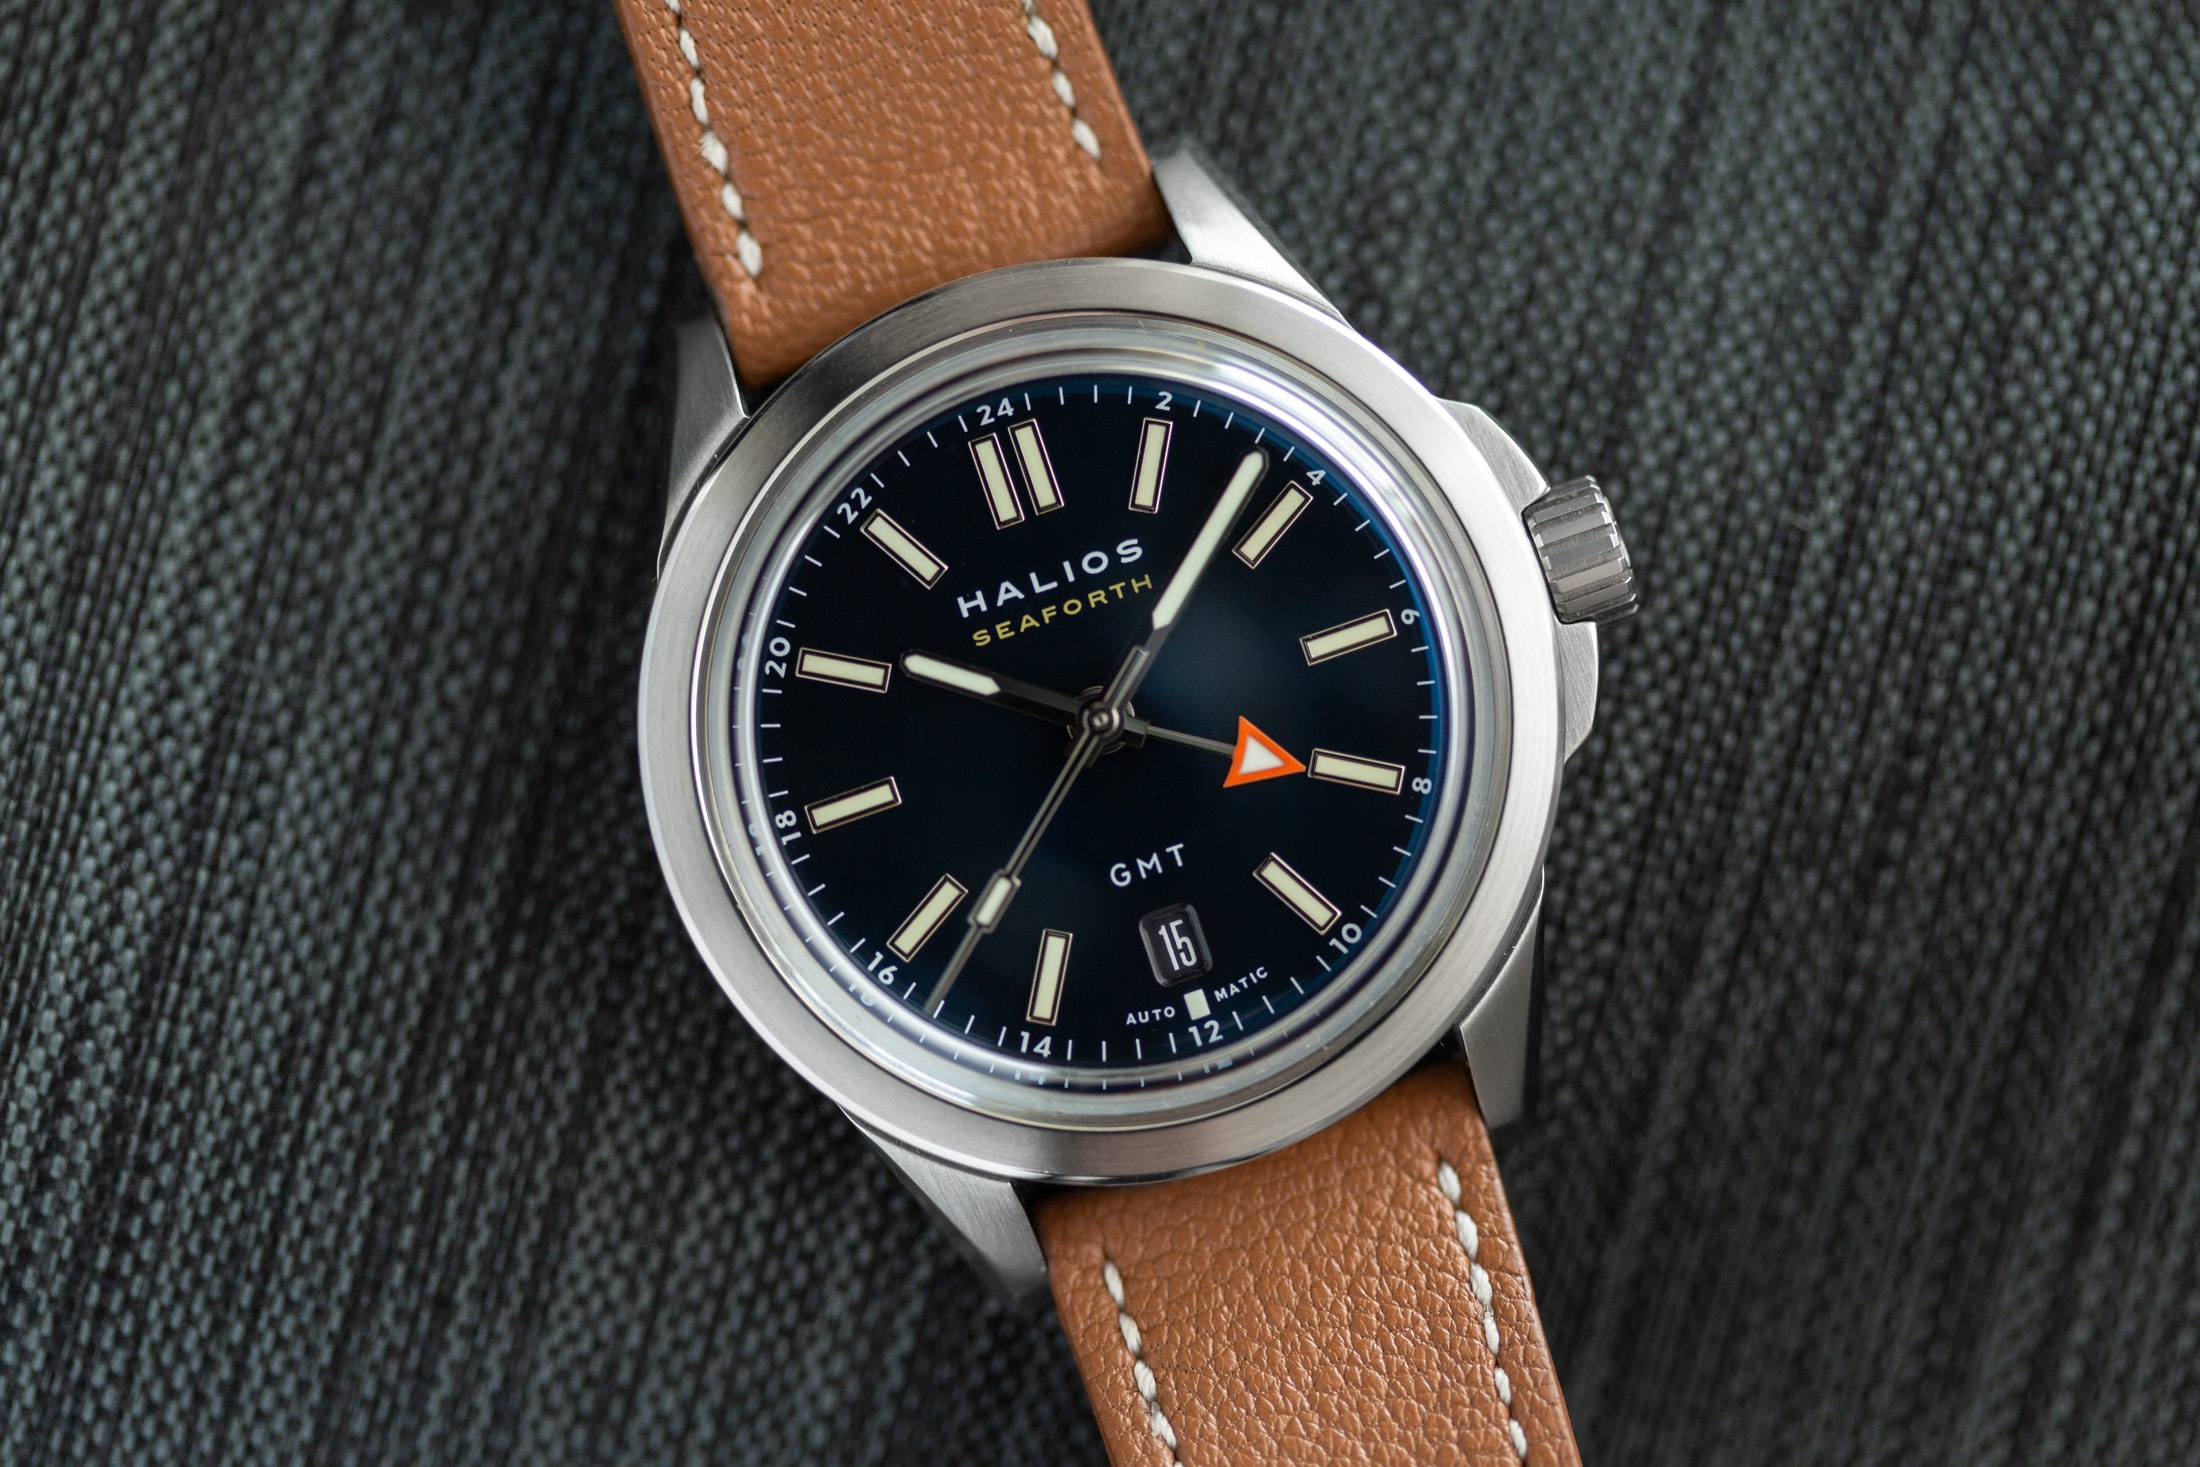 Introducing: The Halios Seaforth GMT (Live Pics & Pricing) Halios Seaforth GMT 1